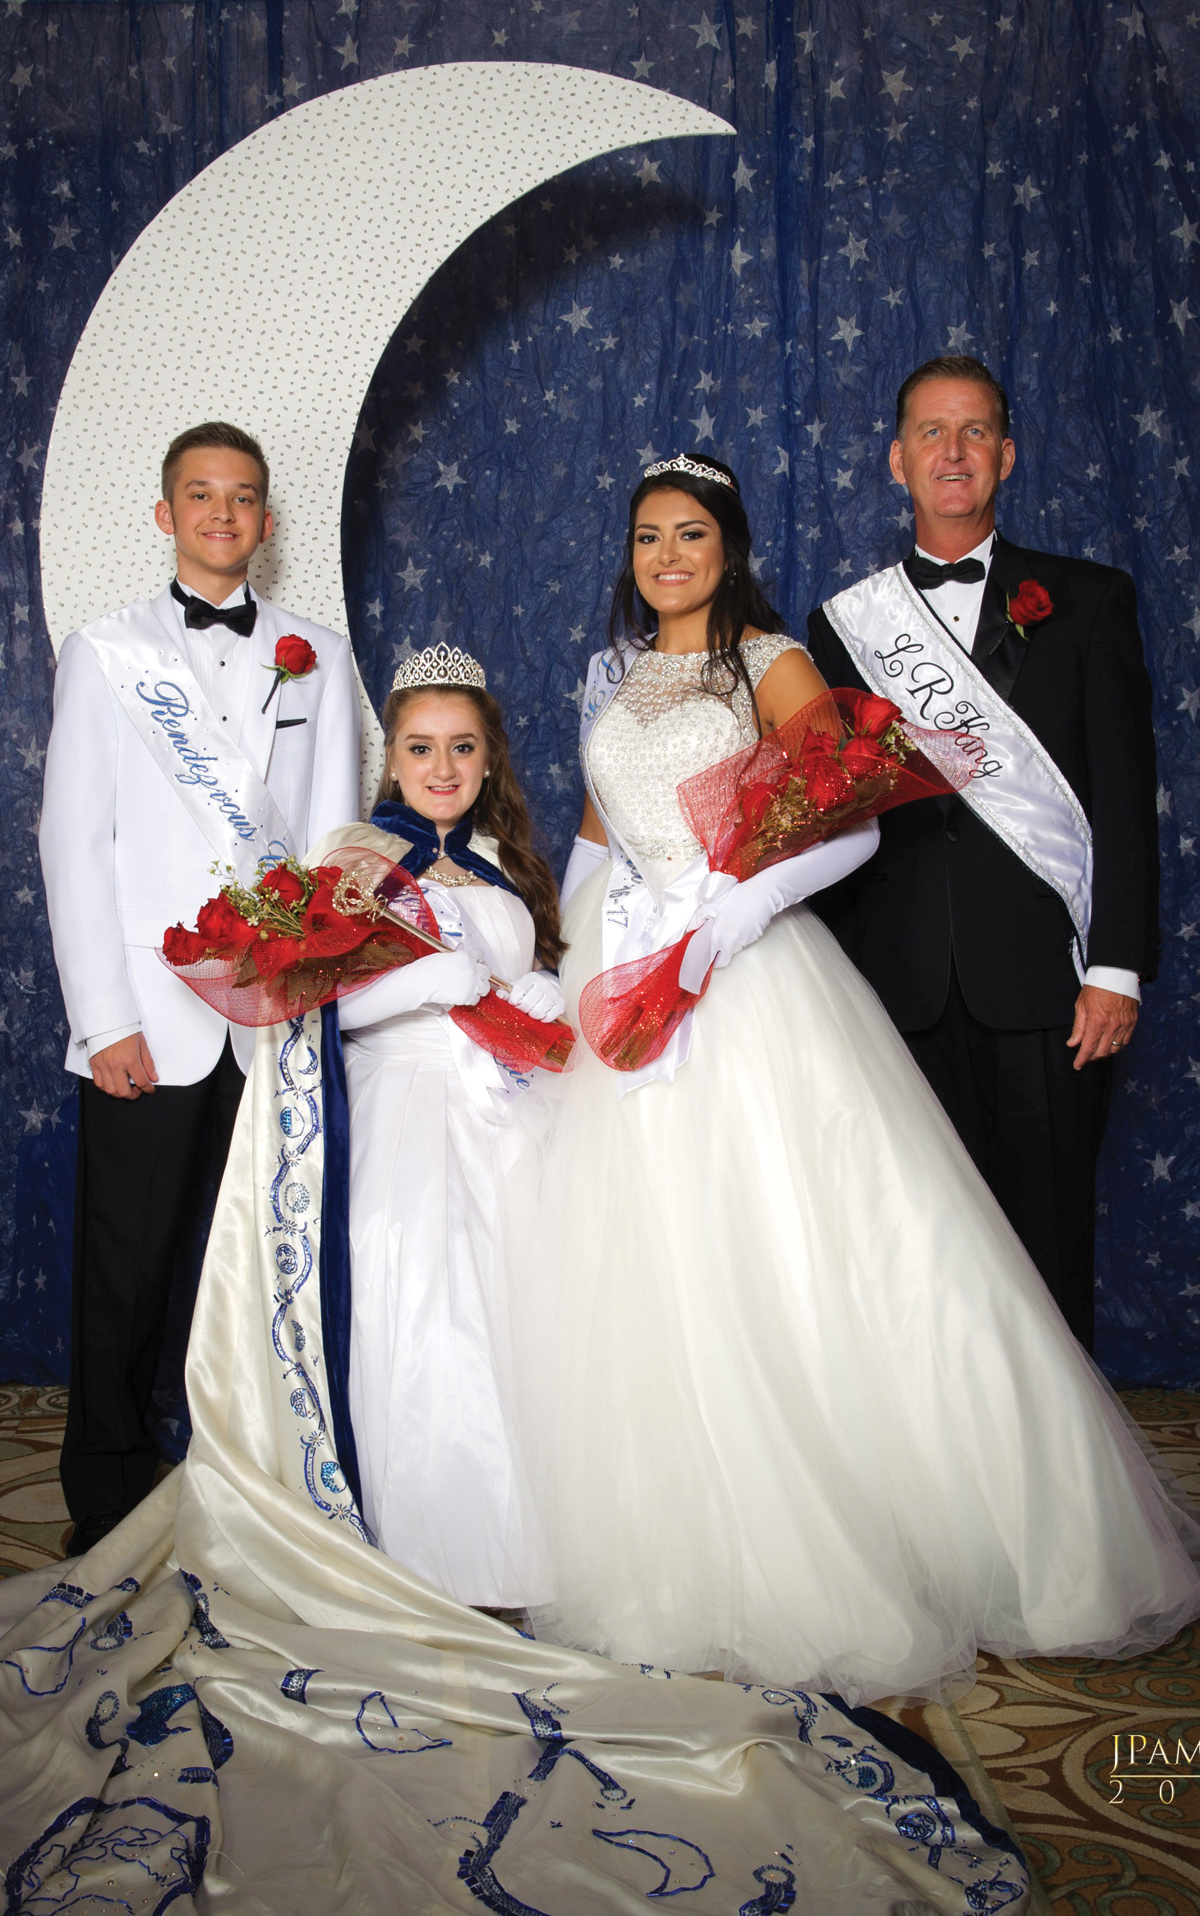 2017 Lunar Rendezvous Queen Madelyn Claire Emilia Chidester poses for a photo with King Kevin Duke, right, Queen Alternate Alexa Rae Trevino and Captain Alexander Edward Struss at the Coronation Ball in Galveston. They will reign over next year's festival. Photo by J. Pamela Photography